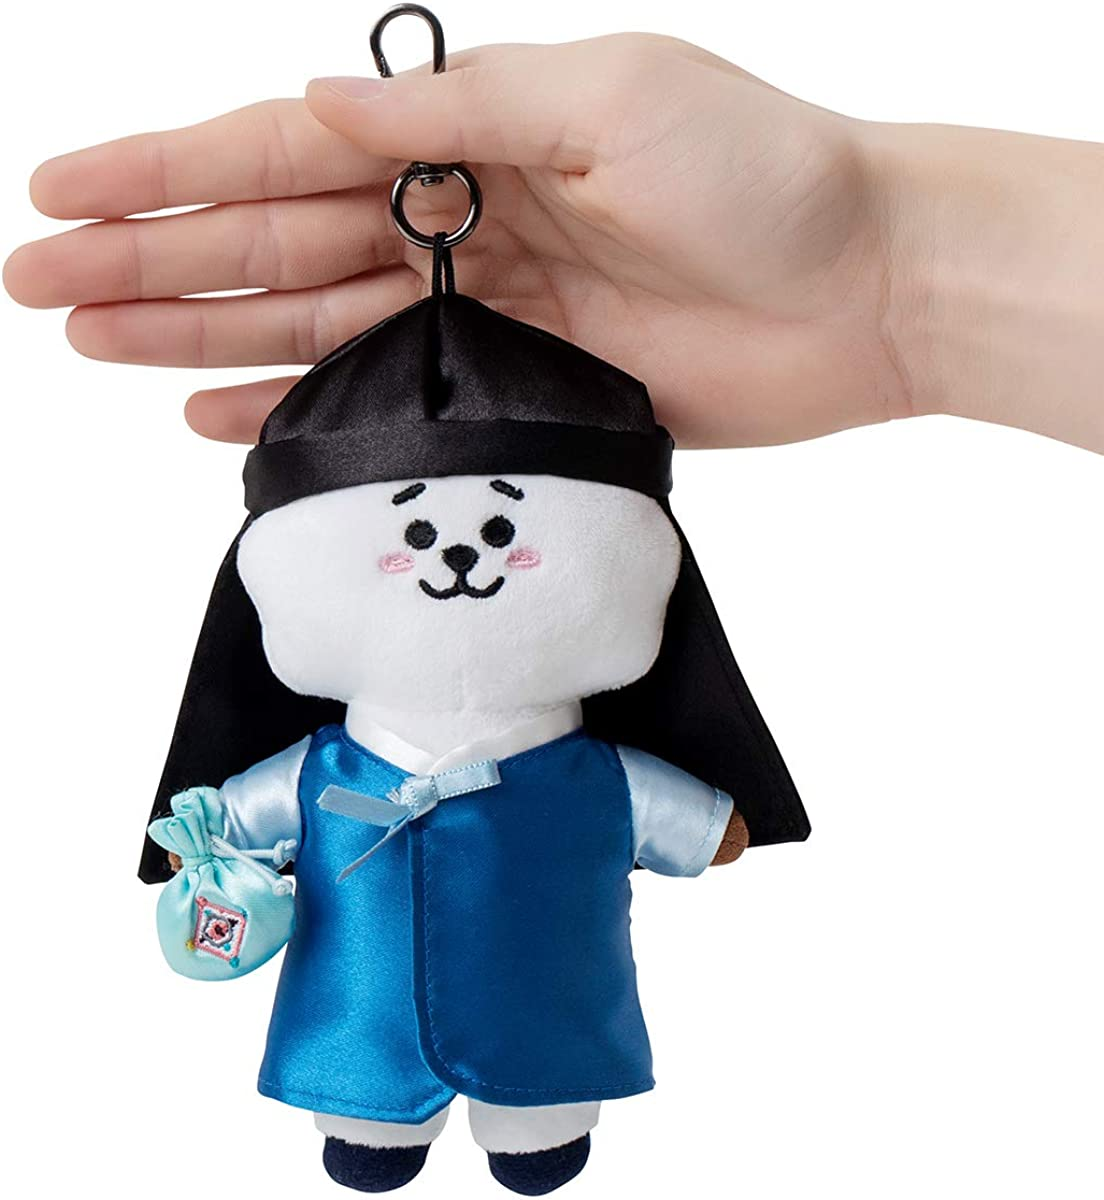 Korean Traditional Dress Costume Character Plush Figure Keychain Ring Bag Charm BT21 Official Merchandise by Line Friends